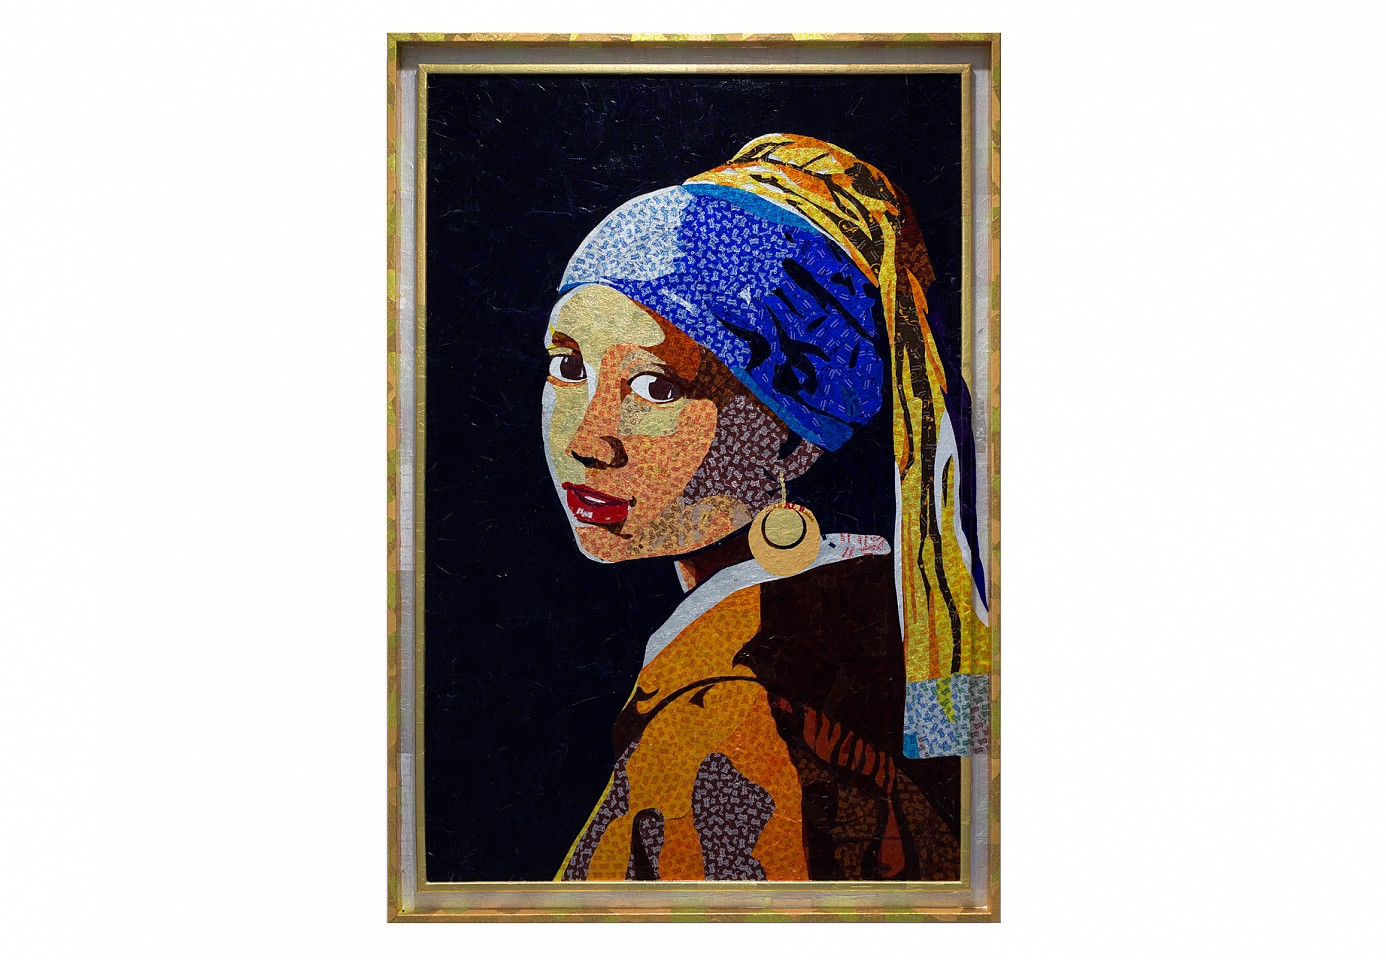 "<p><span class=""viewer-caption-artist"">Ghada Al Rabea</span></p> <p><span class=""viewer-caption-title""><i>Girl With The Gold Earring</i></span>, <span class=""viewer-caption-year"">2014</span></p> <p><span class=""viewer-caption-media"">Candy wrappers on wood</span></p> <p><span class=""viewer-caption-dimensions"">132.7 x 91.5 x 4 cm (52 3/16 x 36 x 1 9/16 in.)</span></p> <p><span class=""viewer-caption-inventory"">GAD0018</span></p> <p><span class=""viewer-caption-aux""></span></p>"